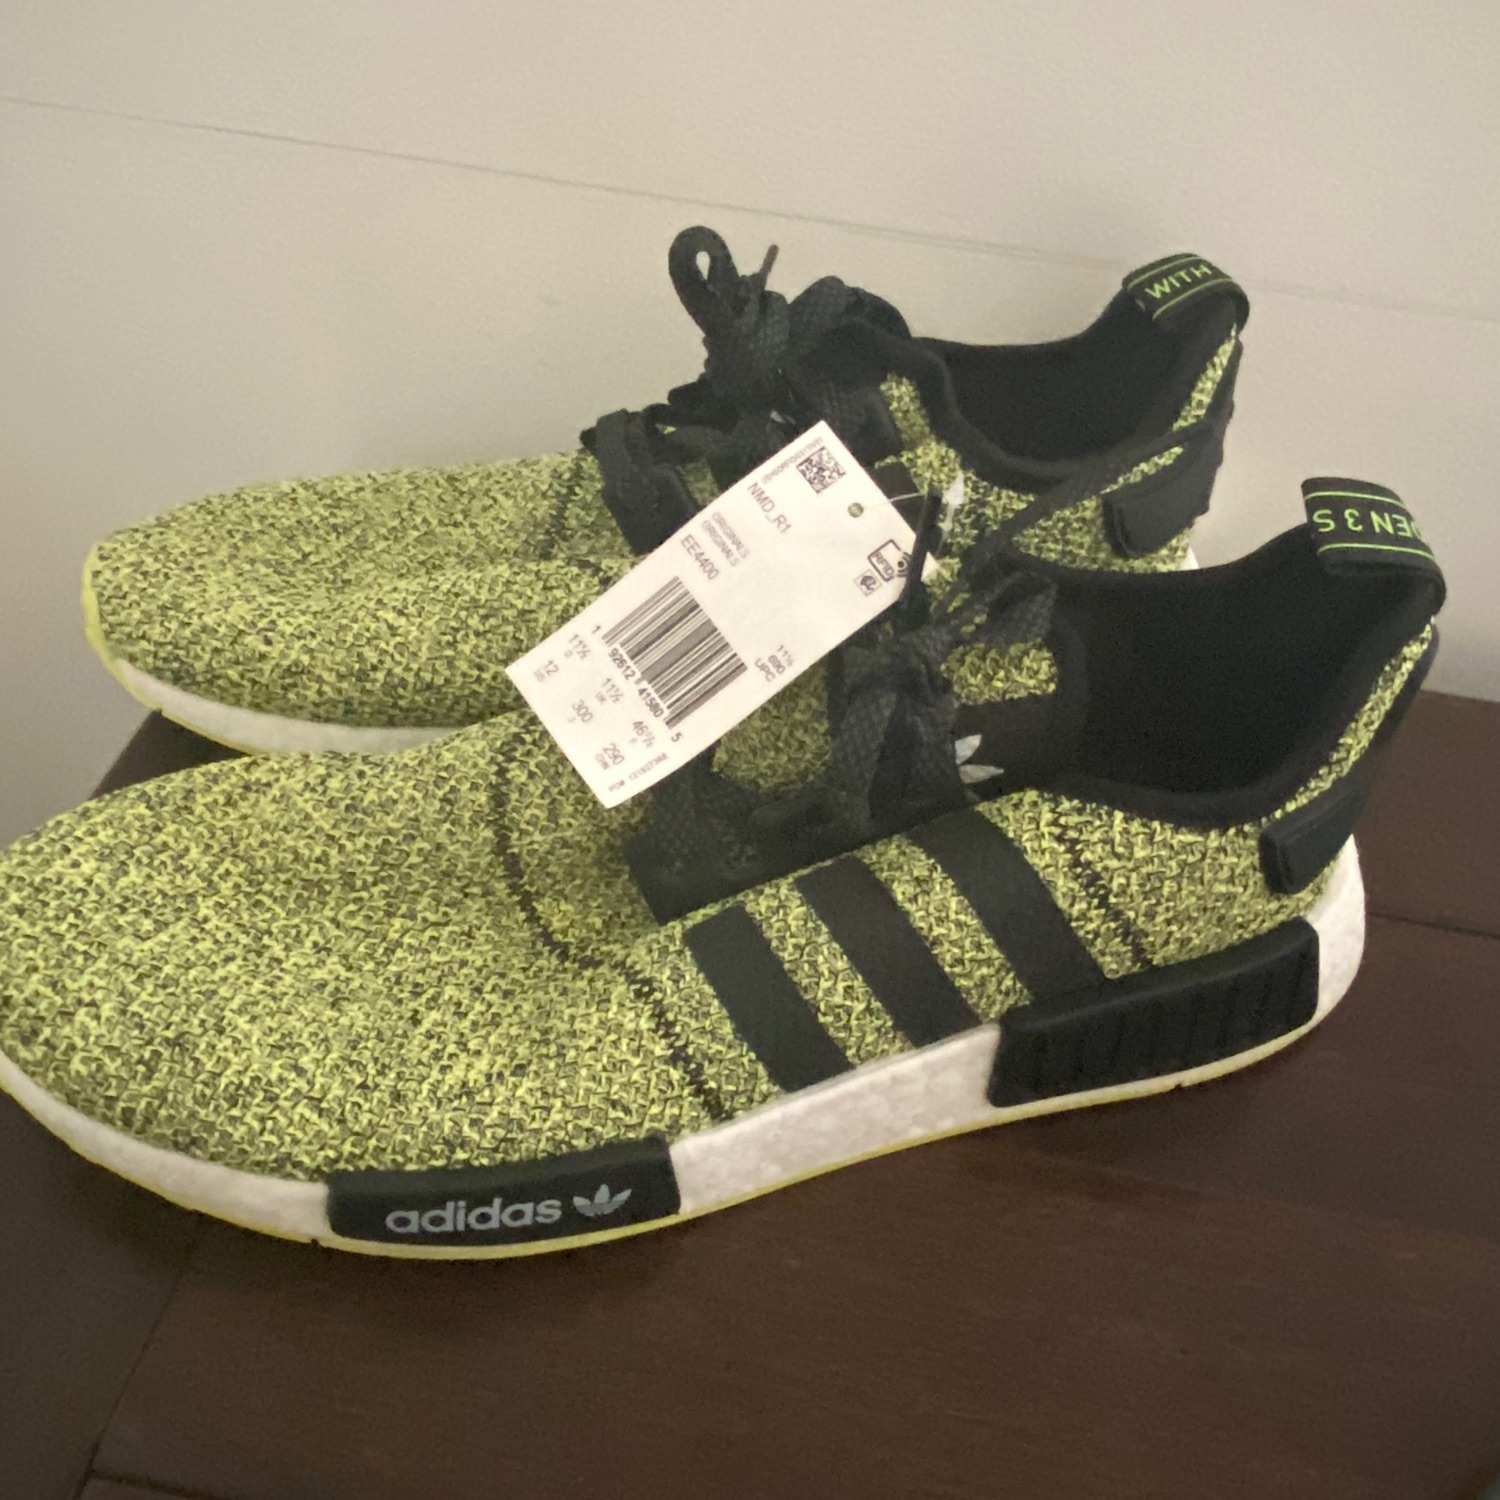 adidas Originals NMD R1 Shoes Men/'s Black Yellow White EE4400 Size 9.5